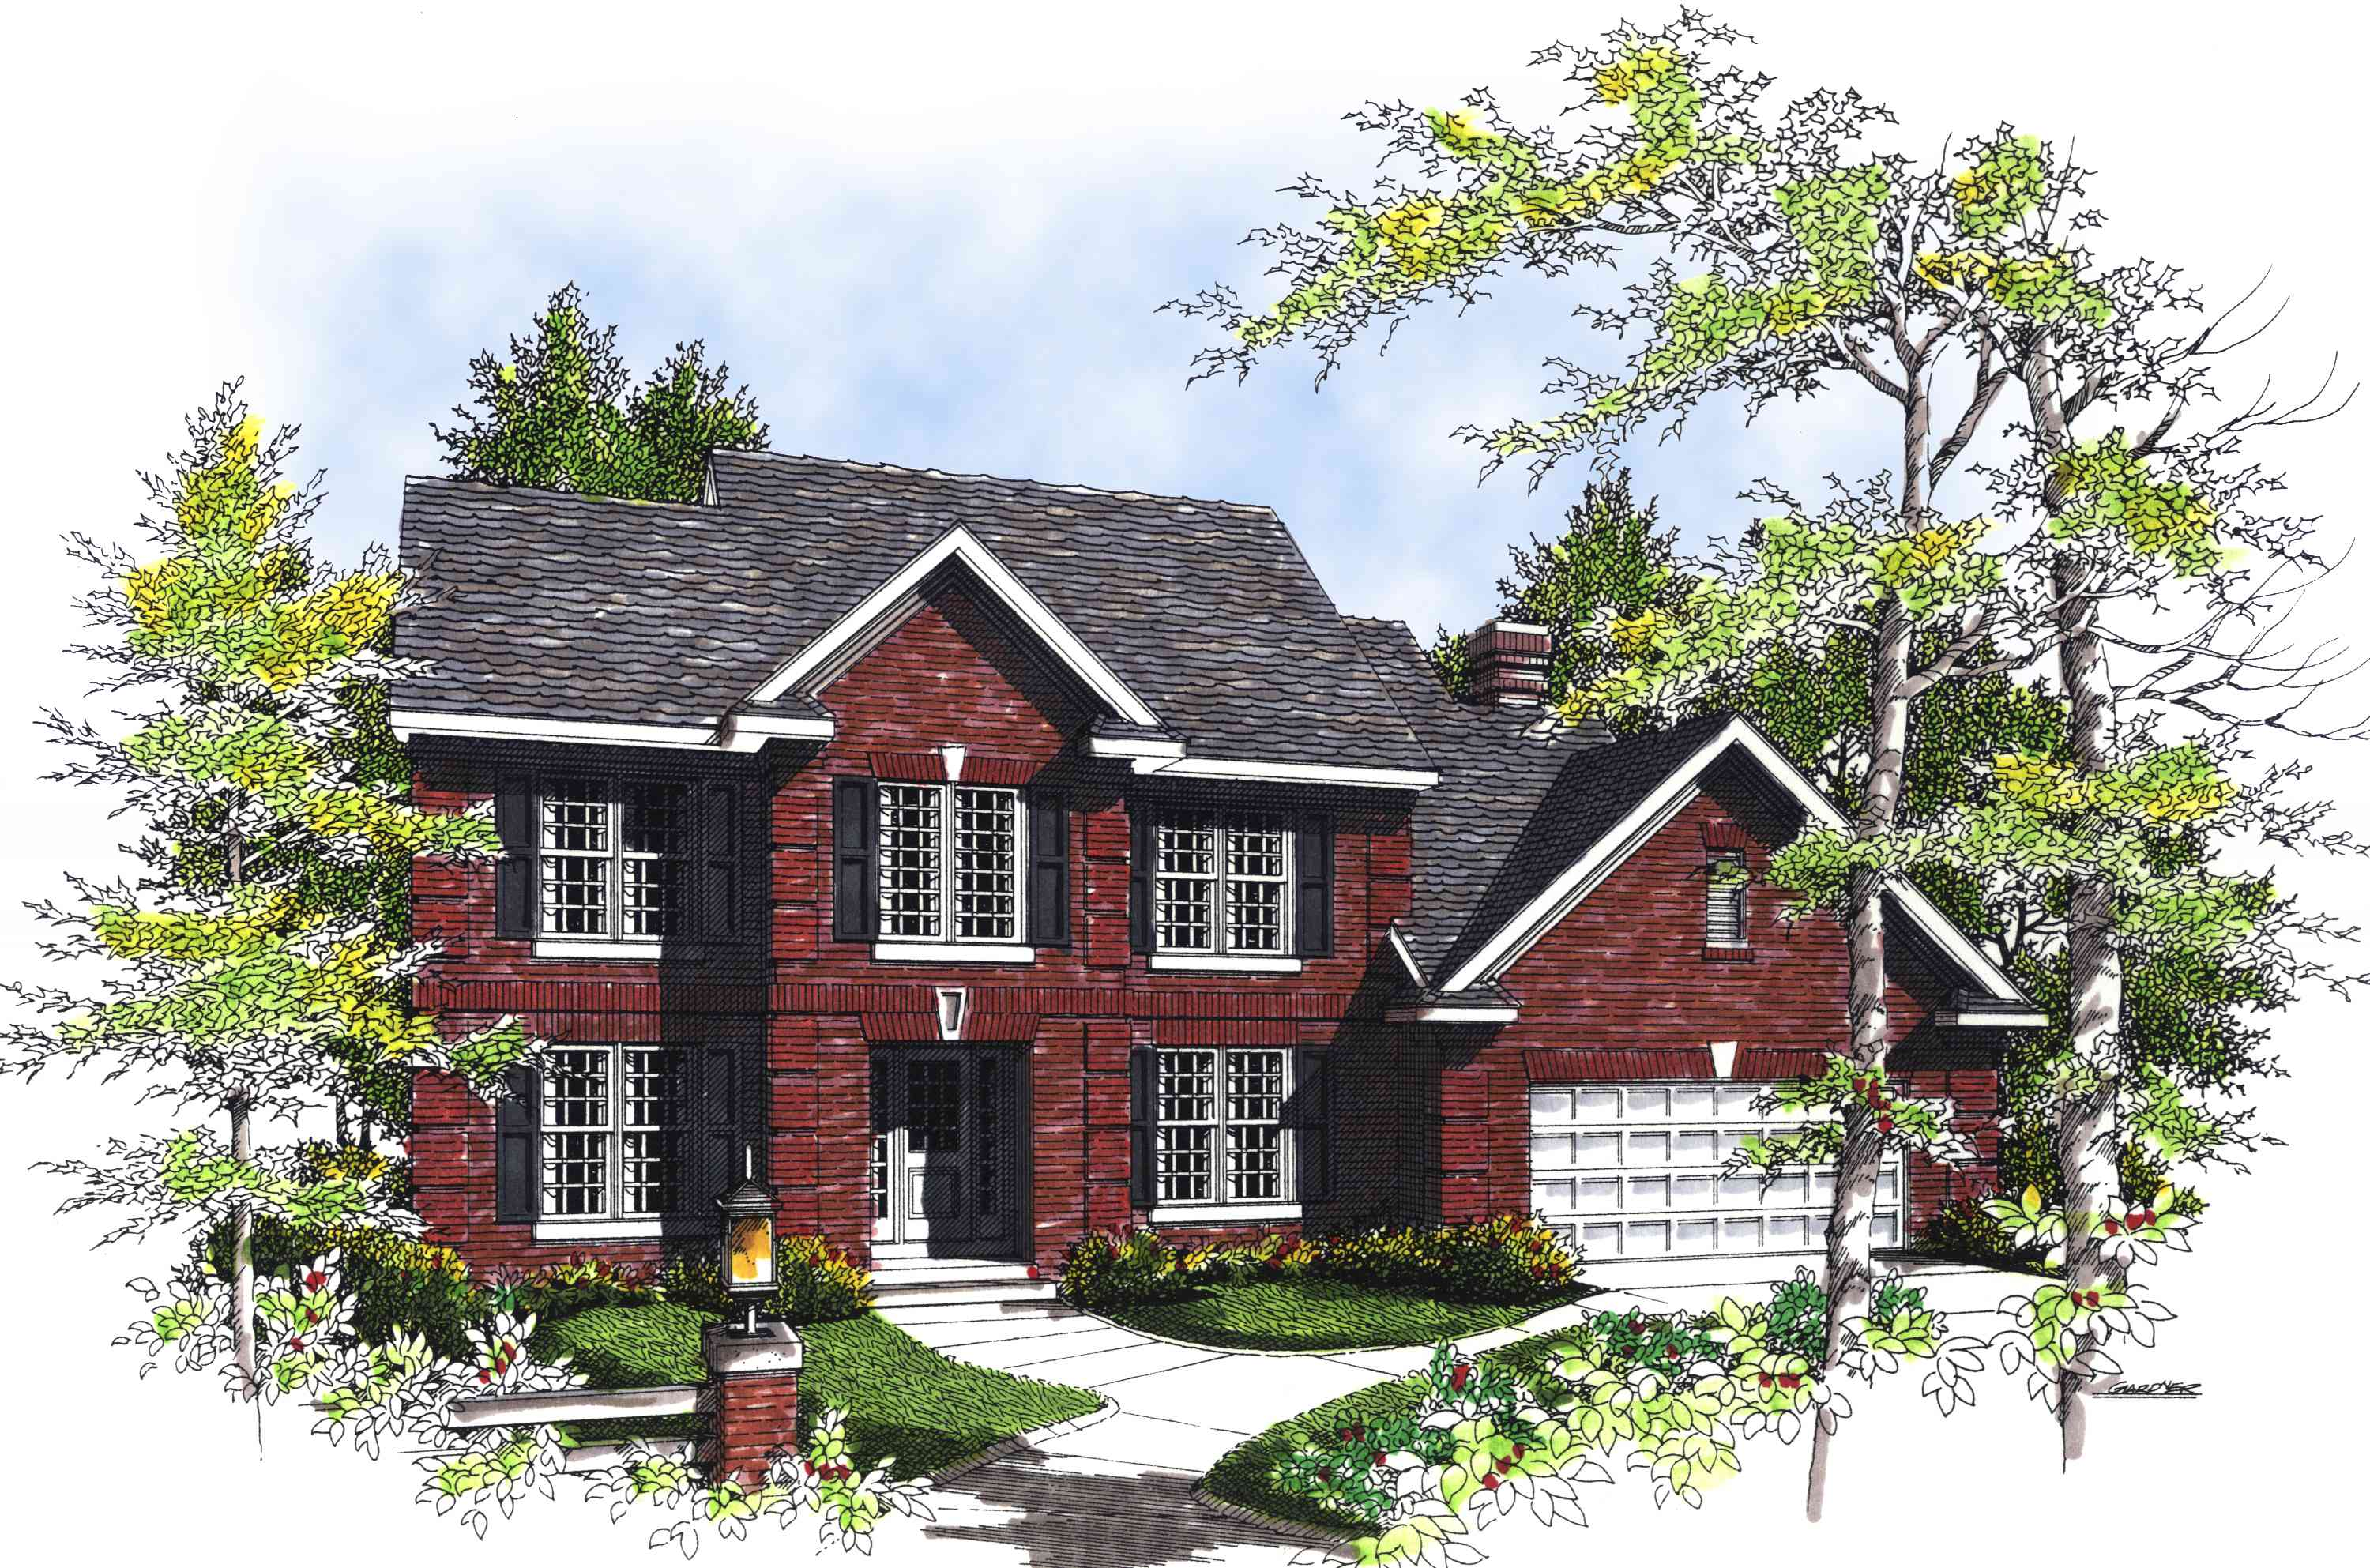 Beautiful 2 story traditional home plan 89489ah 2 story traditional house plans